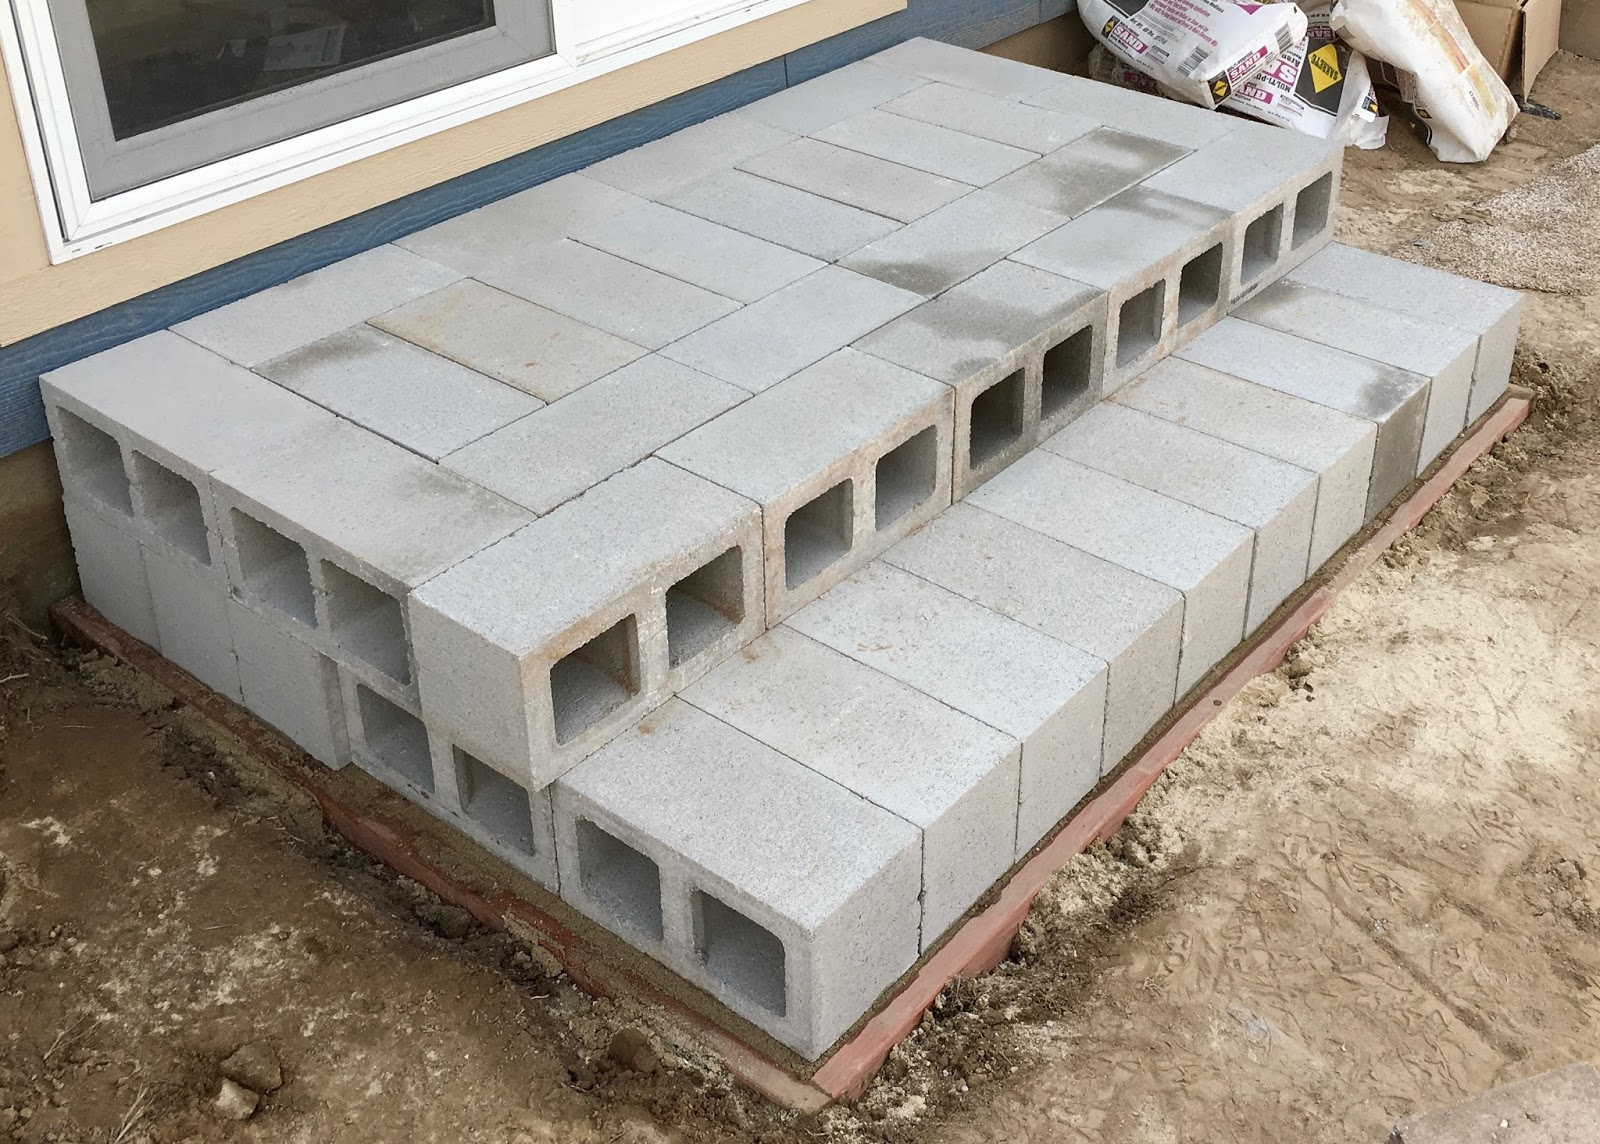 Building With Cinder Blocks : Syonyk s project building temporary stairs with